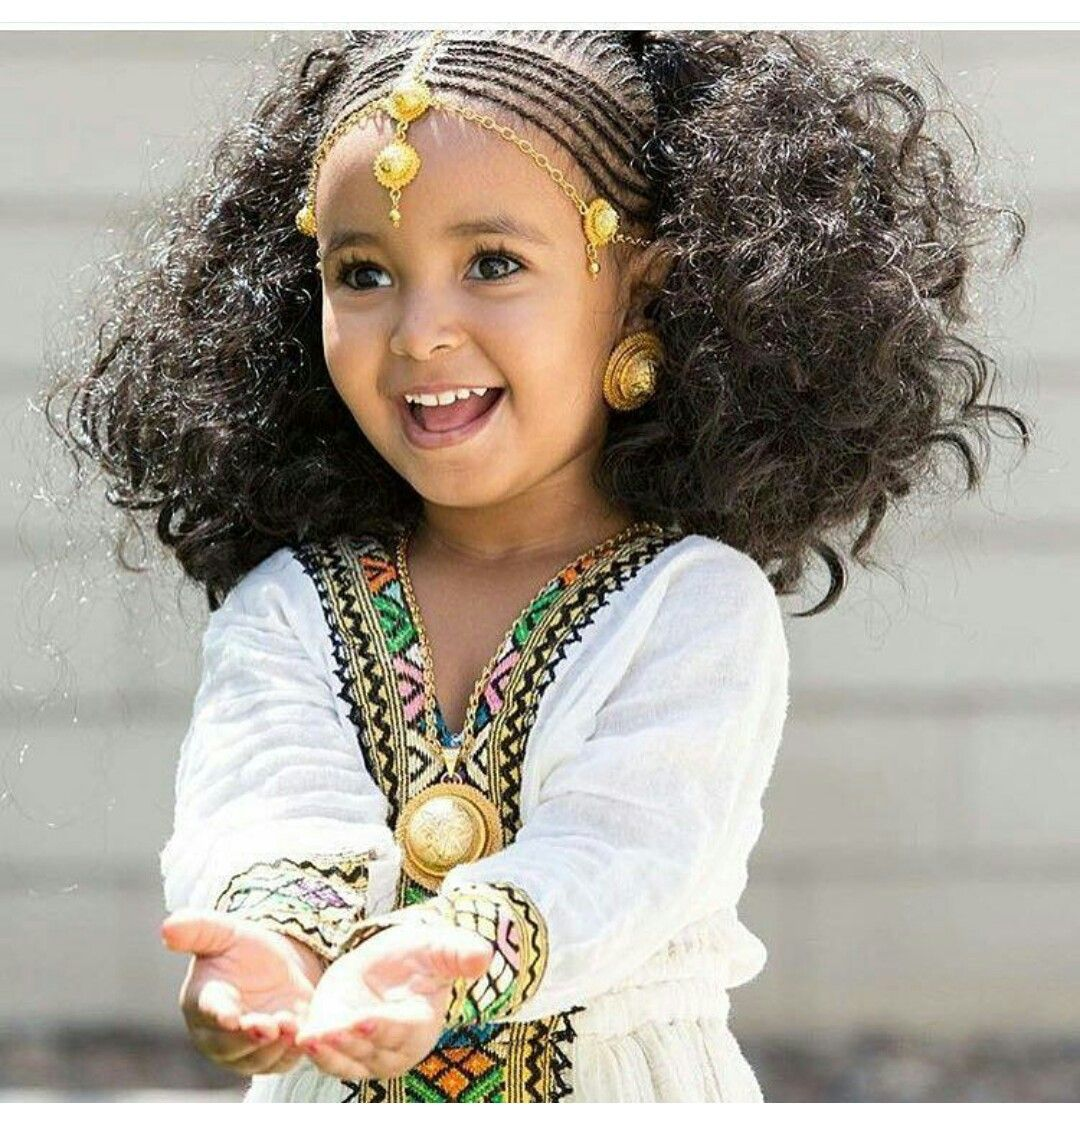 anjali's daughter. she's the optimistic one when anjali